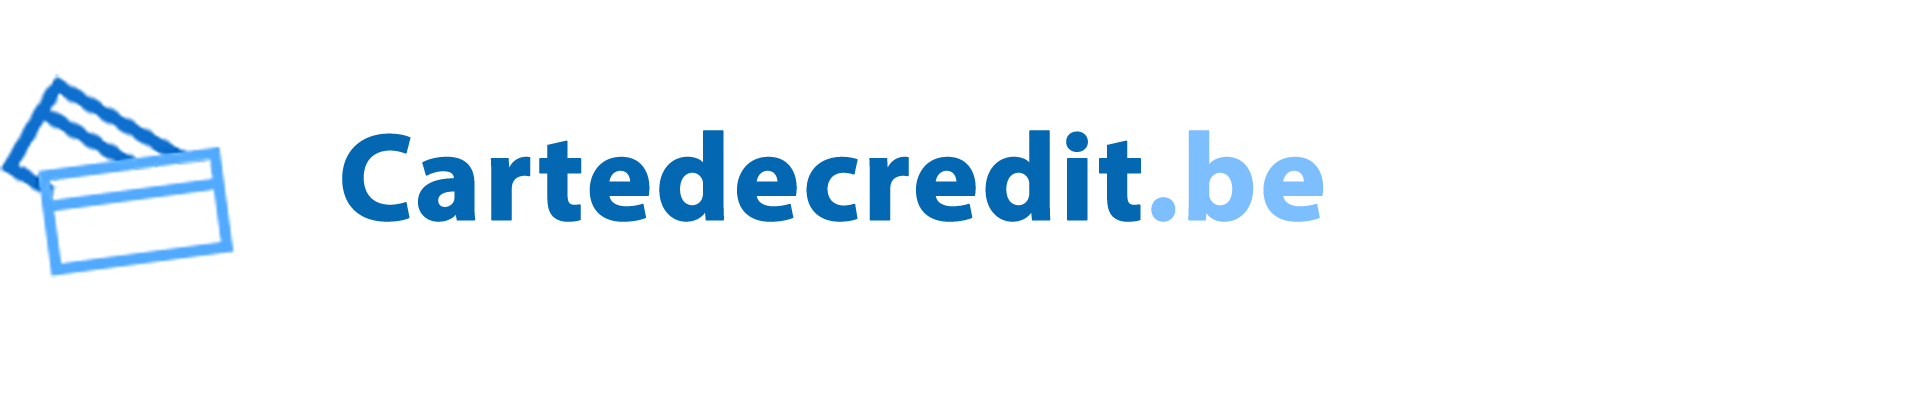 cartedecredit.be